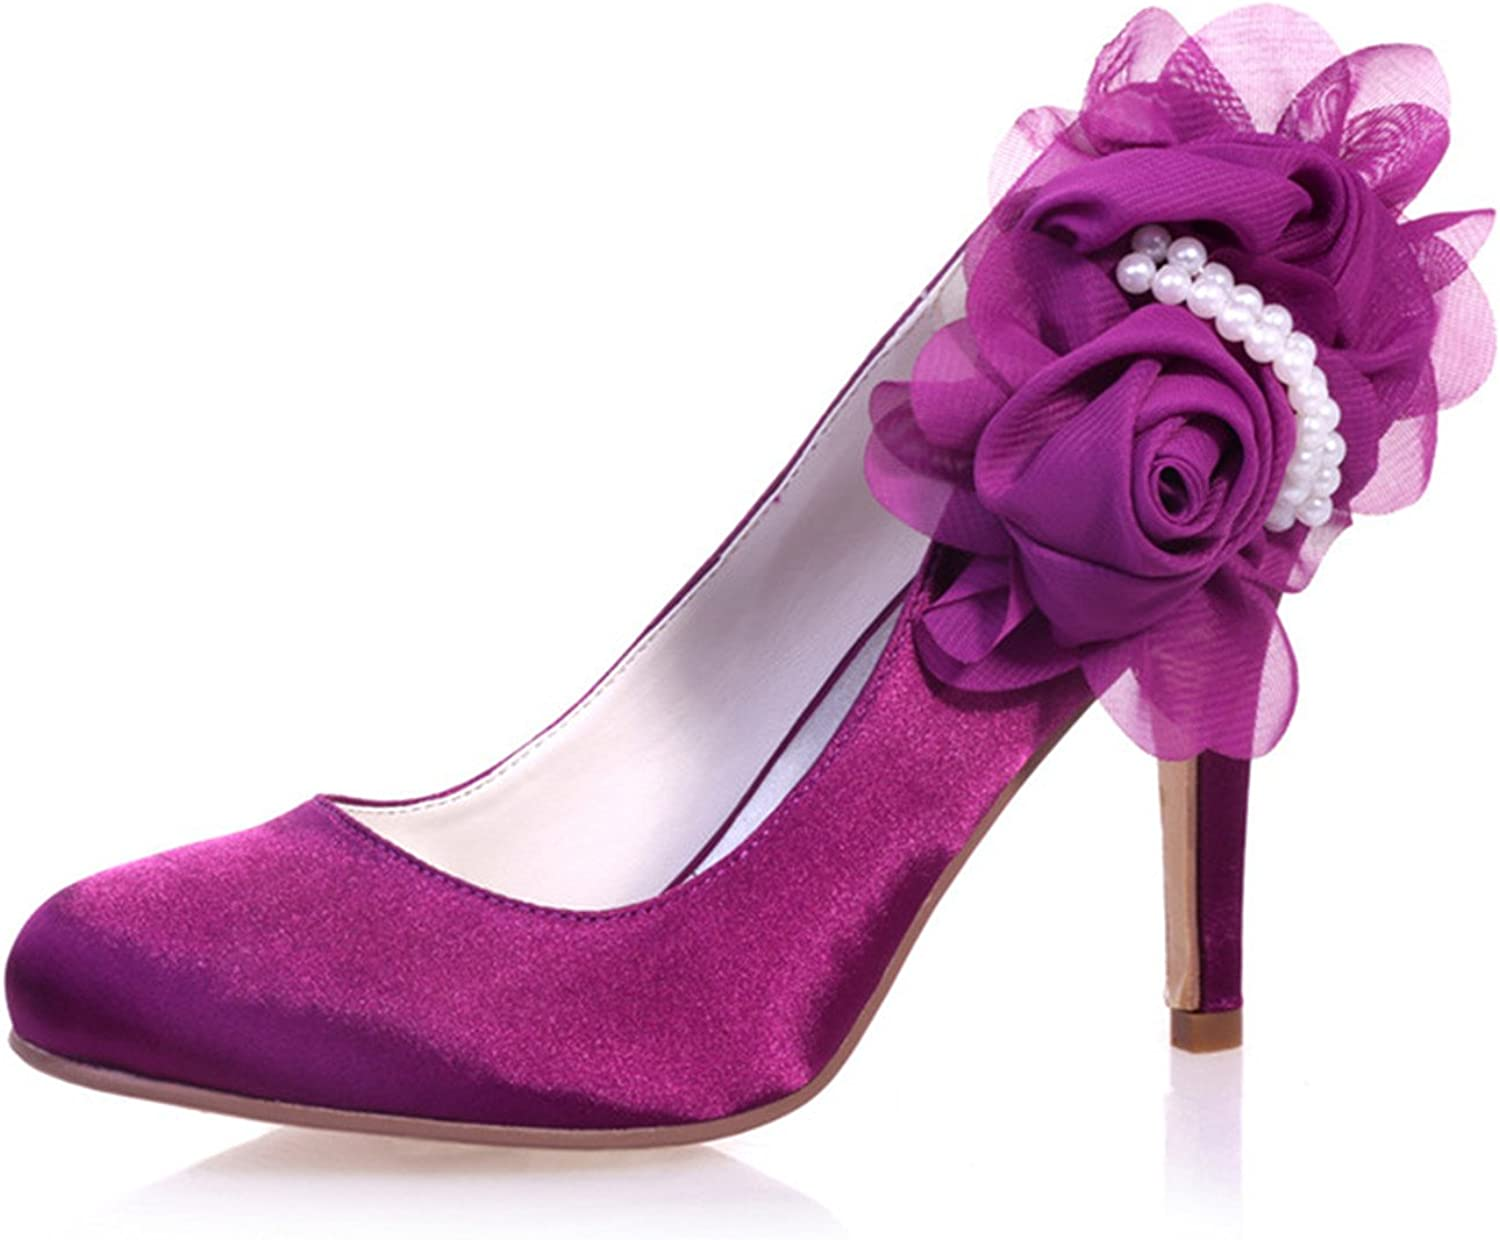 Fanciest Women's Bridal Wedding Party Evening Pointed-Toe Satin High Heel Pump shoes 5623-11